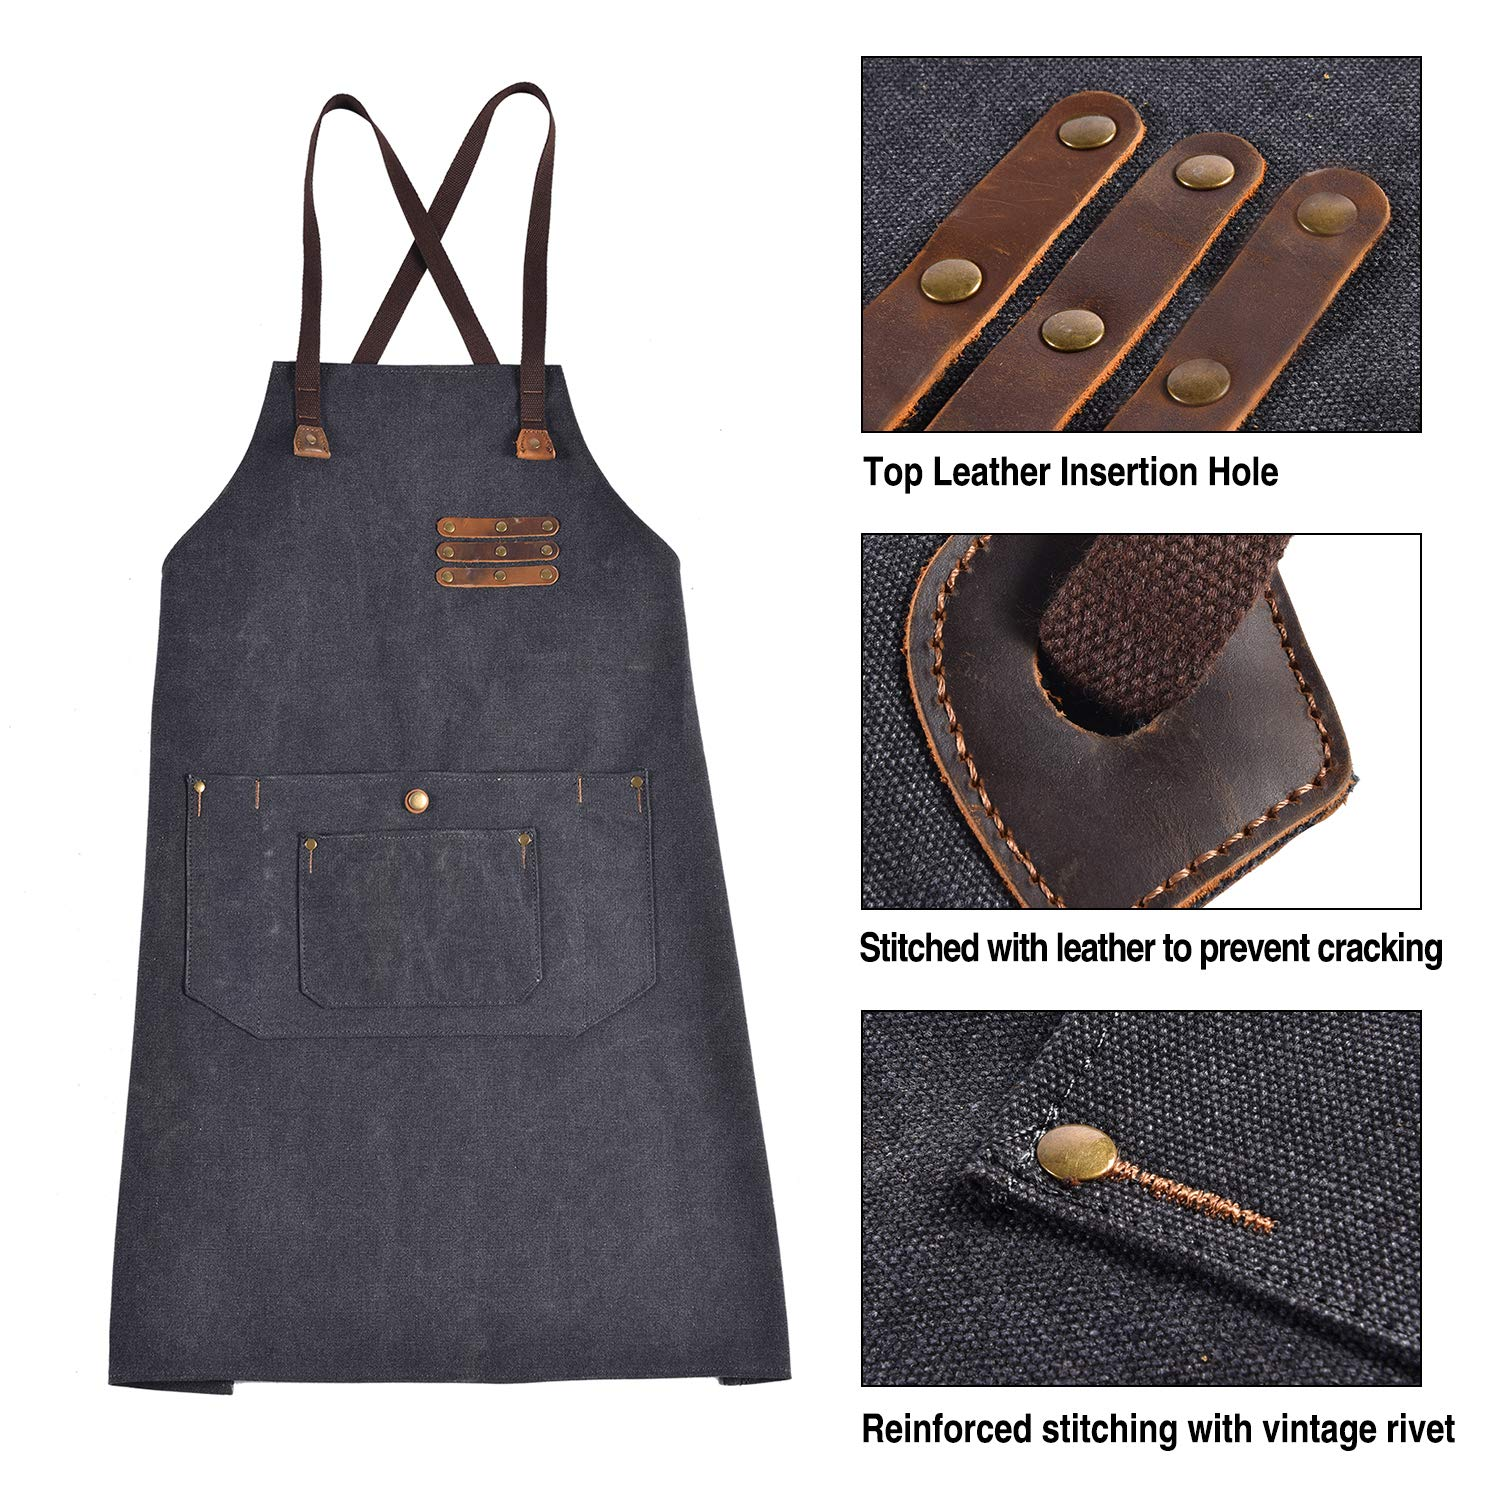 Canvas Shop Apron for Men & Women  Heavy Duty Work Apron with Pocket & Cross-Back Straps   Adjustable Tool Apron M to XXL(Grey) by ruizhixuan (Image #4)